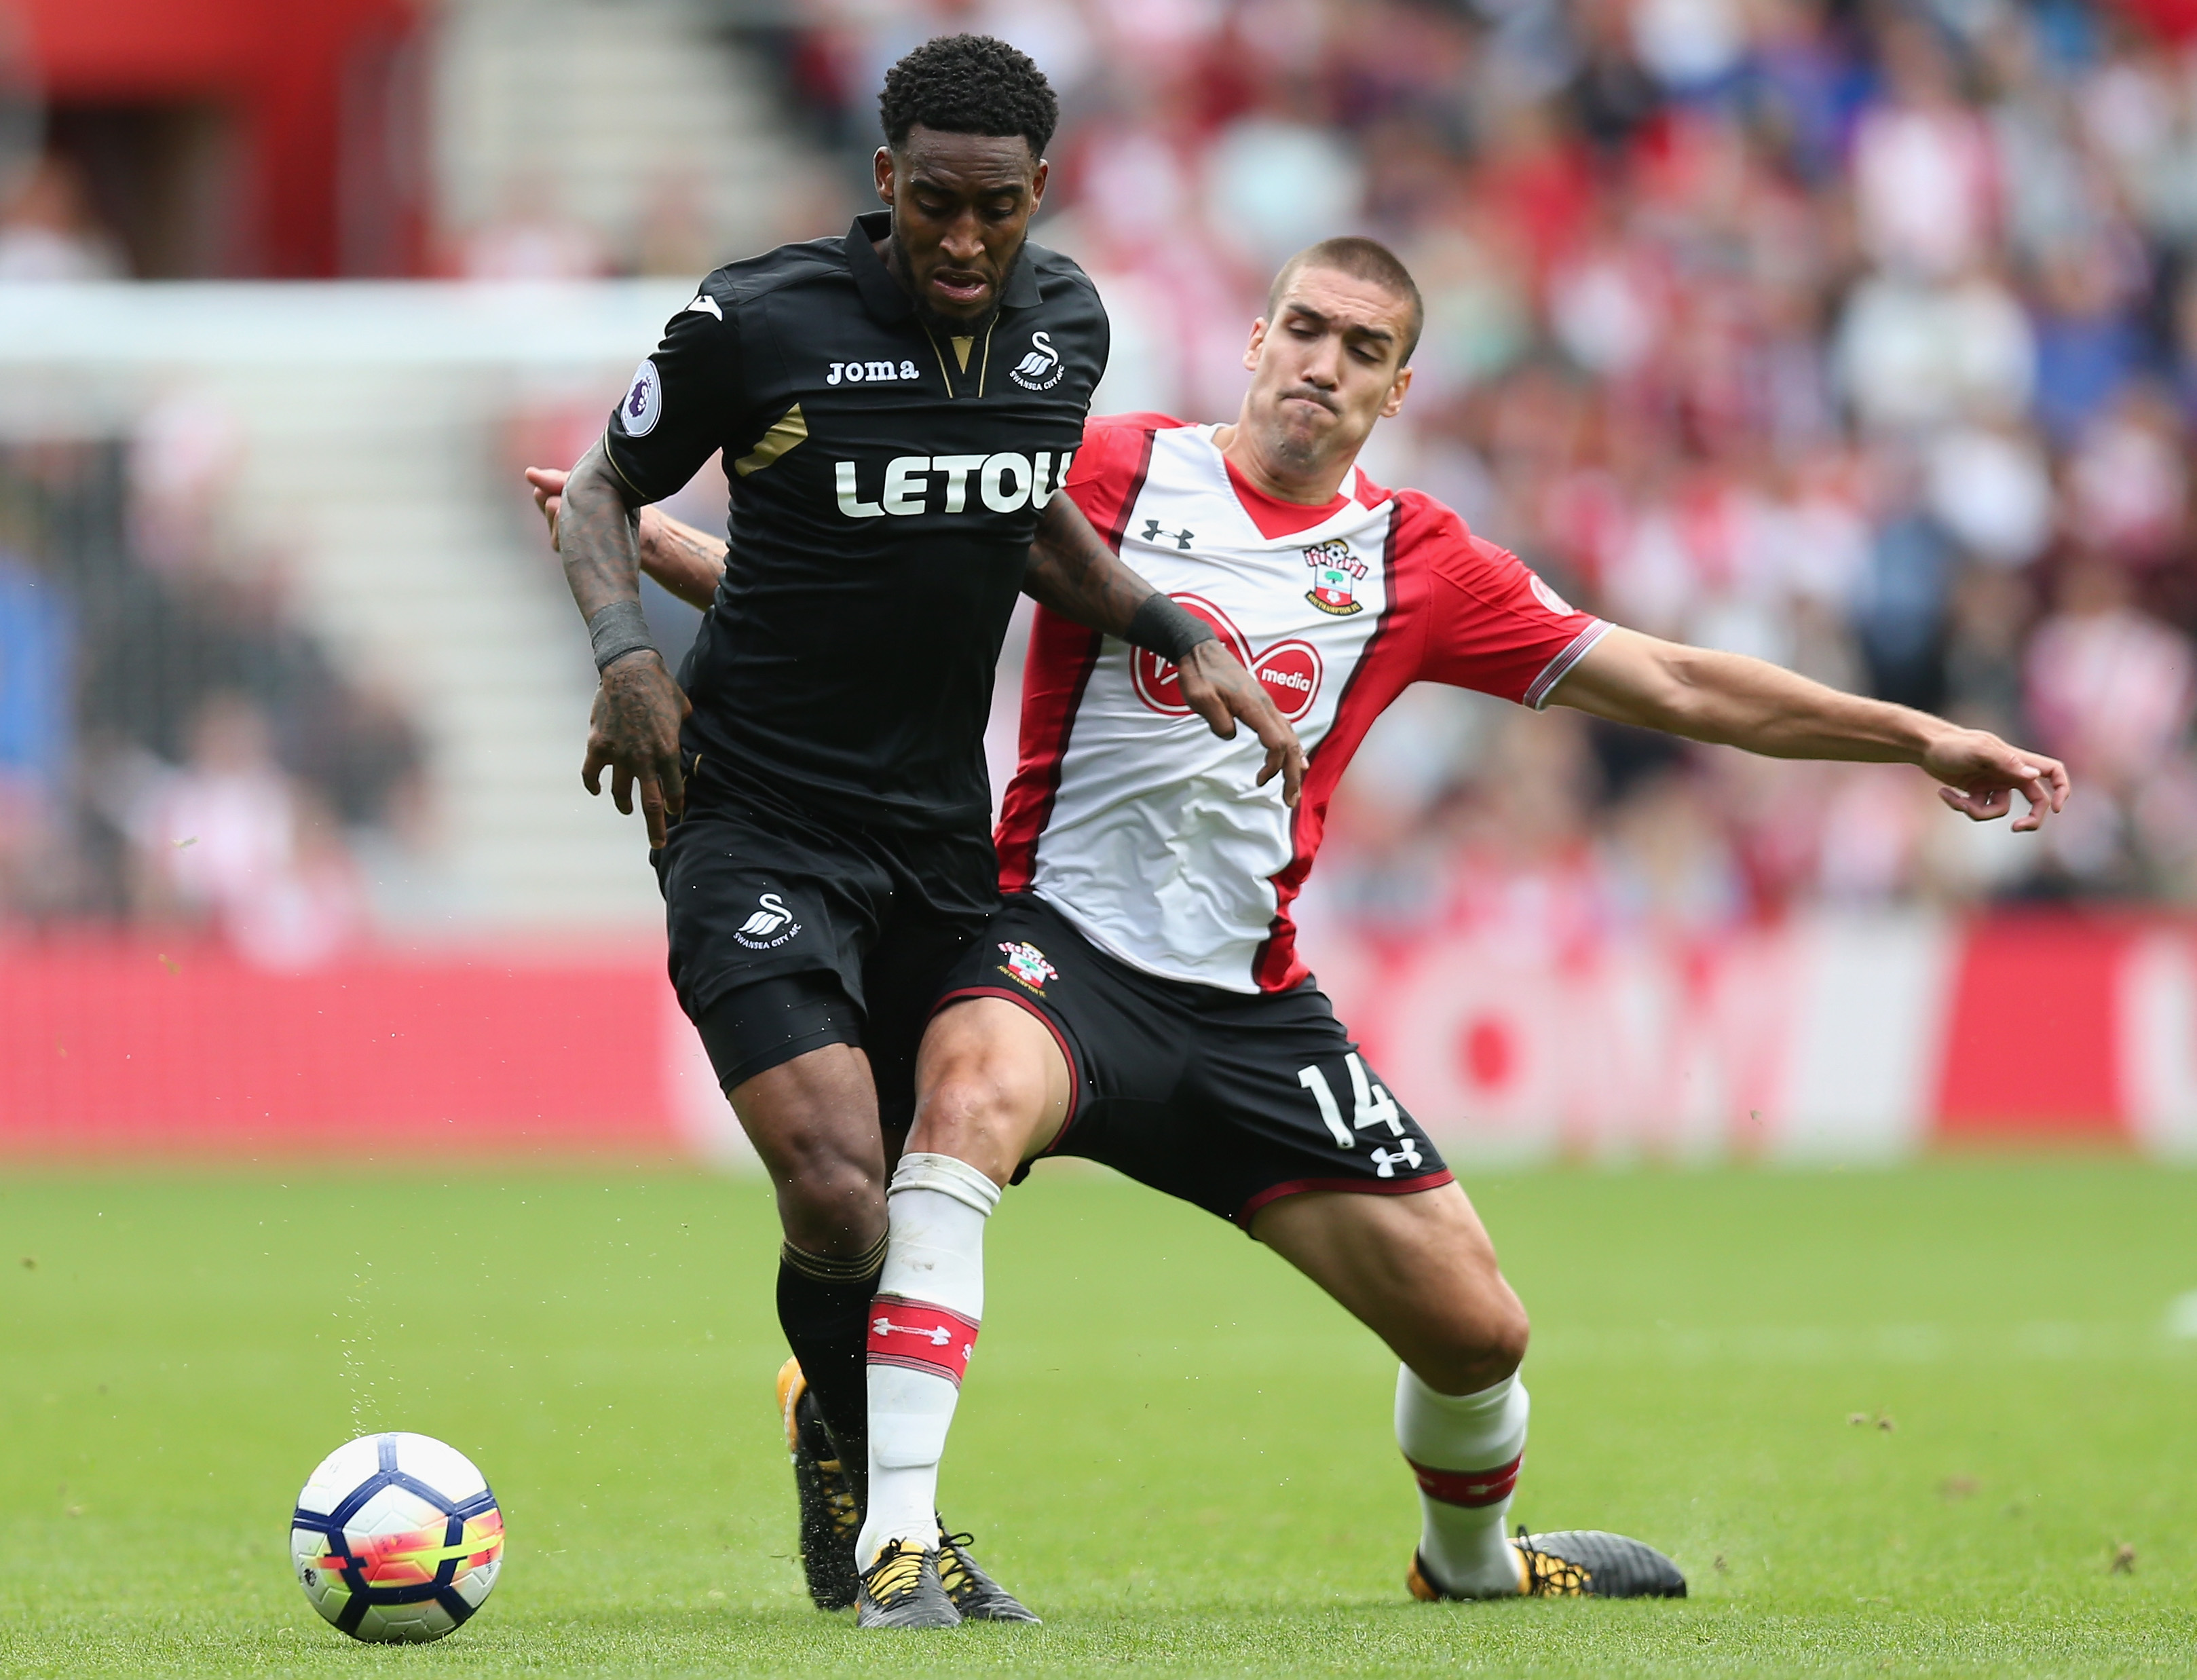 Tammy will score goals for Swansea, say Clement